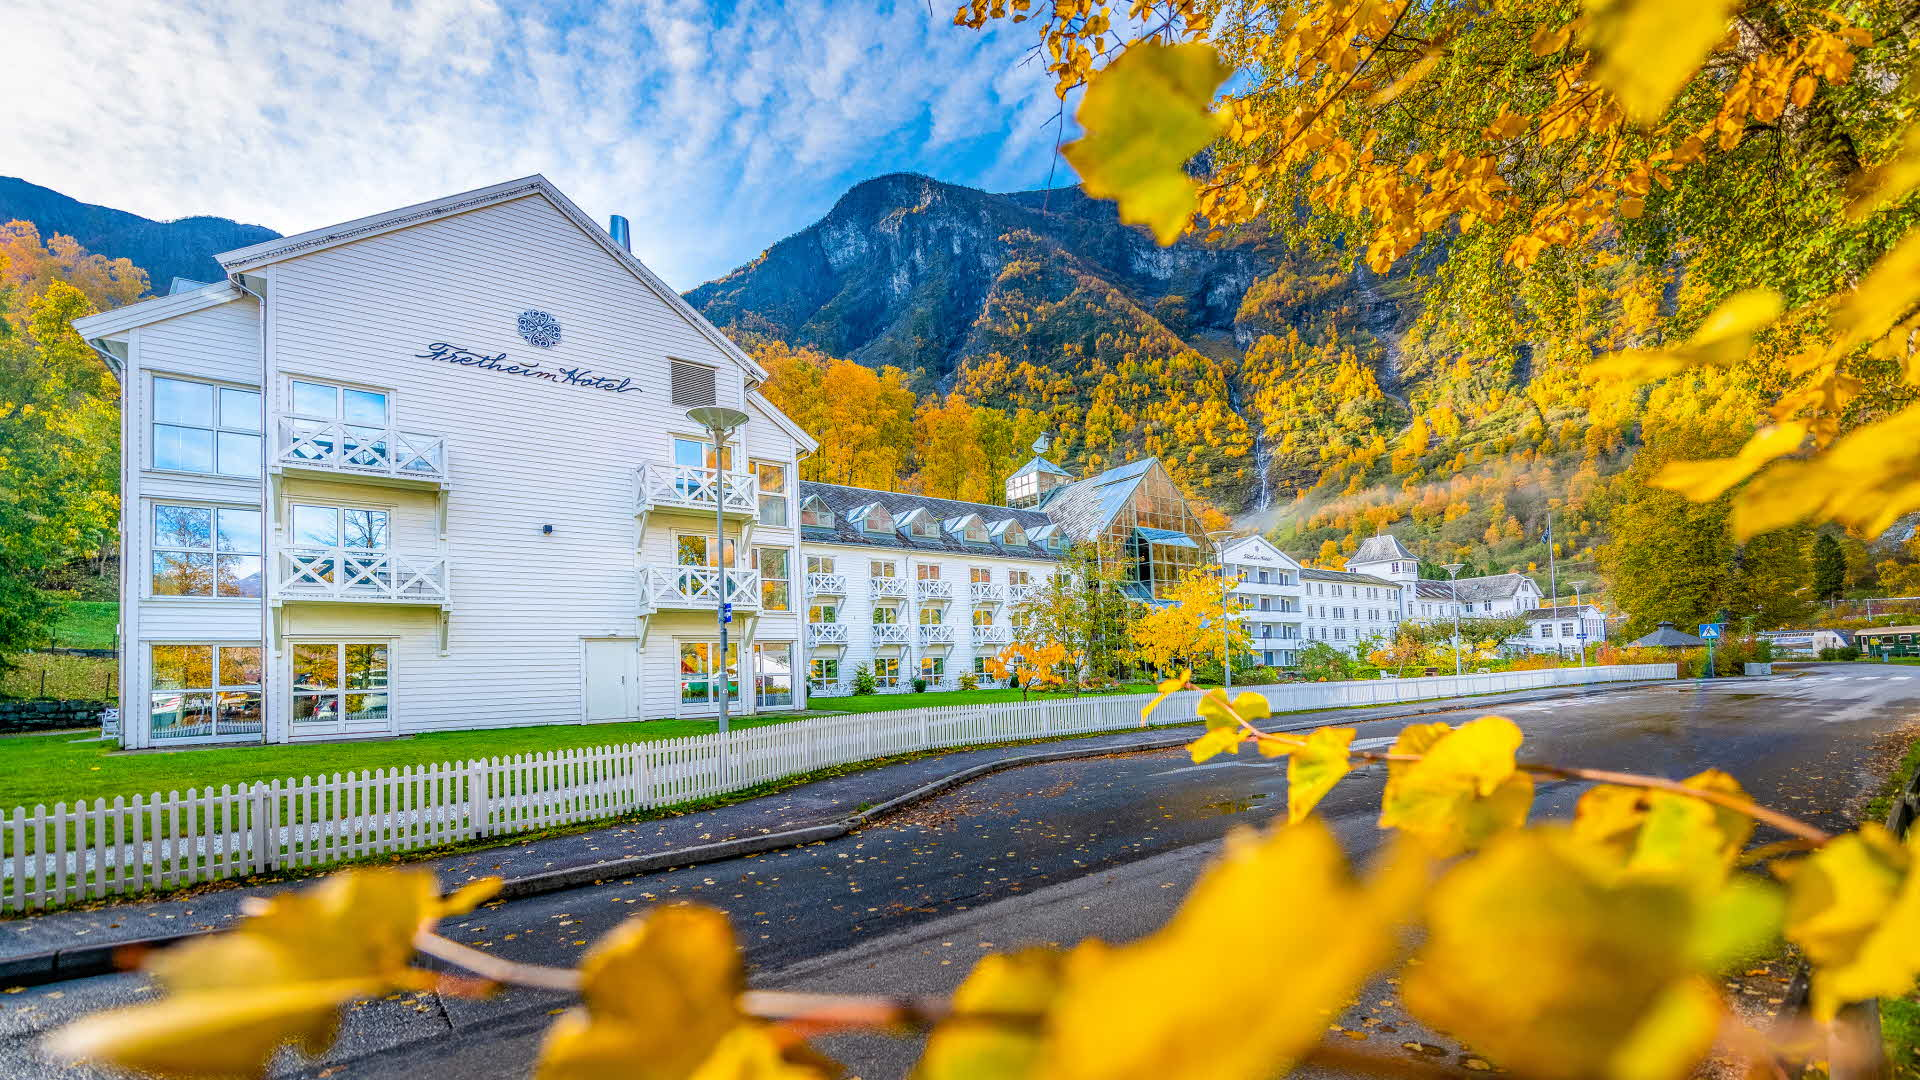 accommodation in flam Fretheim Hotel exterior accommodation in flam Fretheim Hotel exterior in beautiful summer in sunshine tall mountains in background